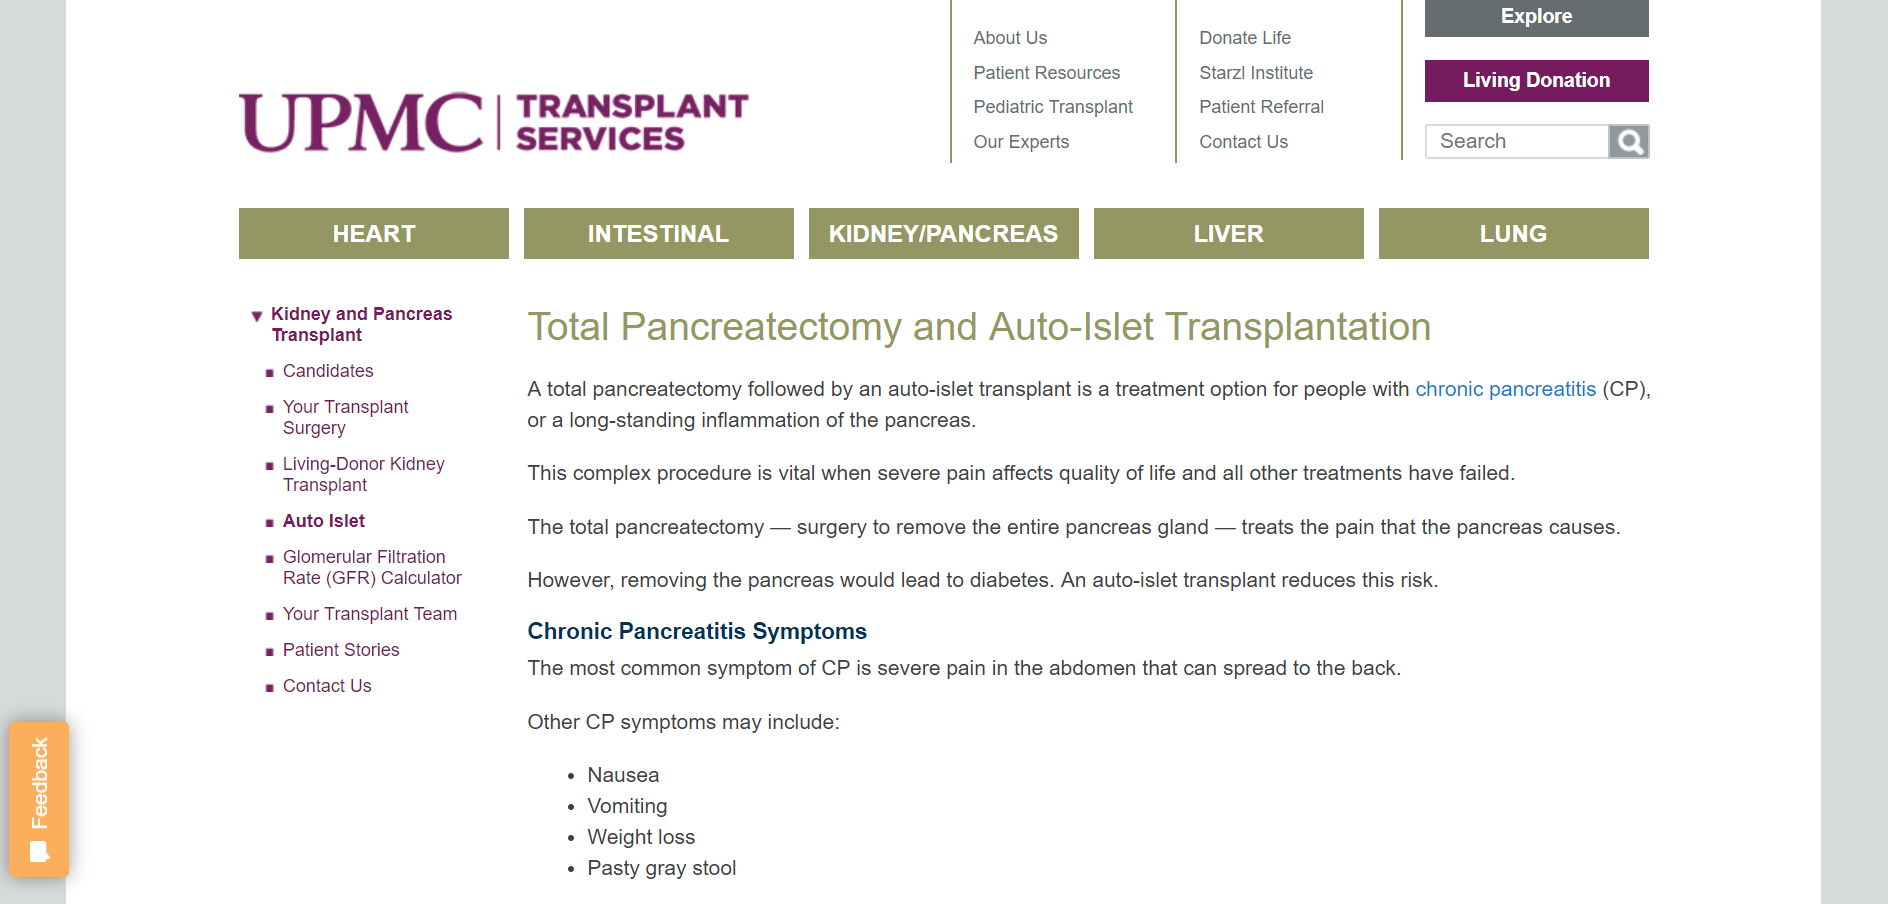 University of Pittsburgh Medical Center Transplant Services